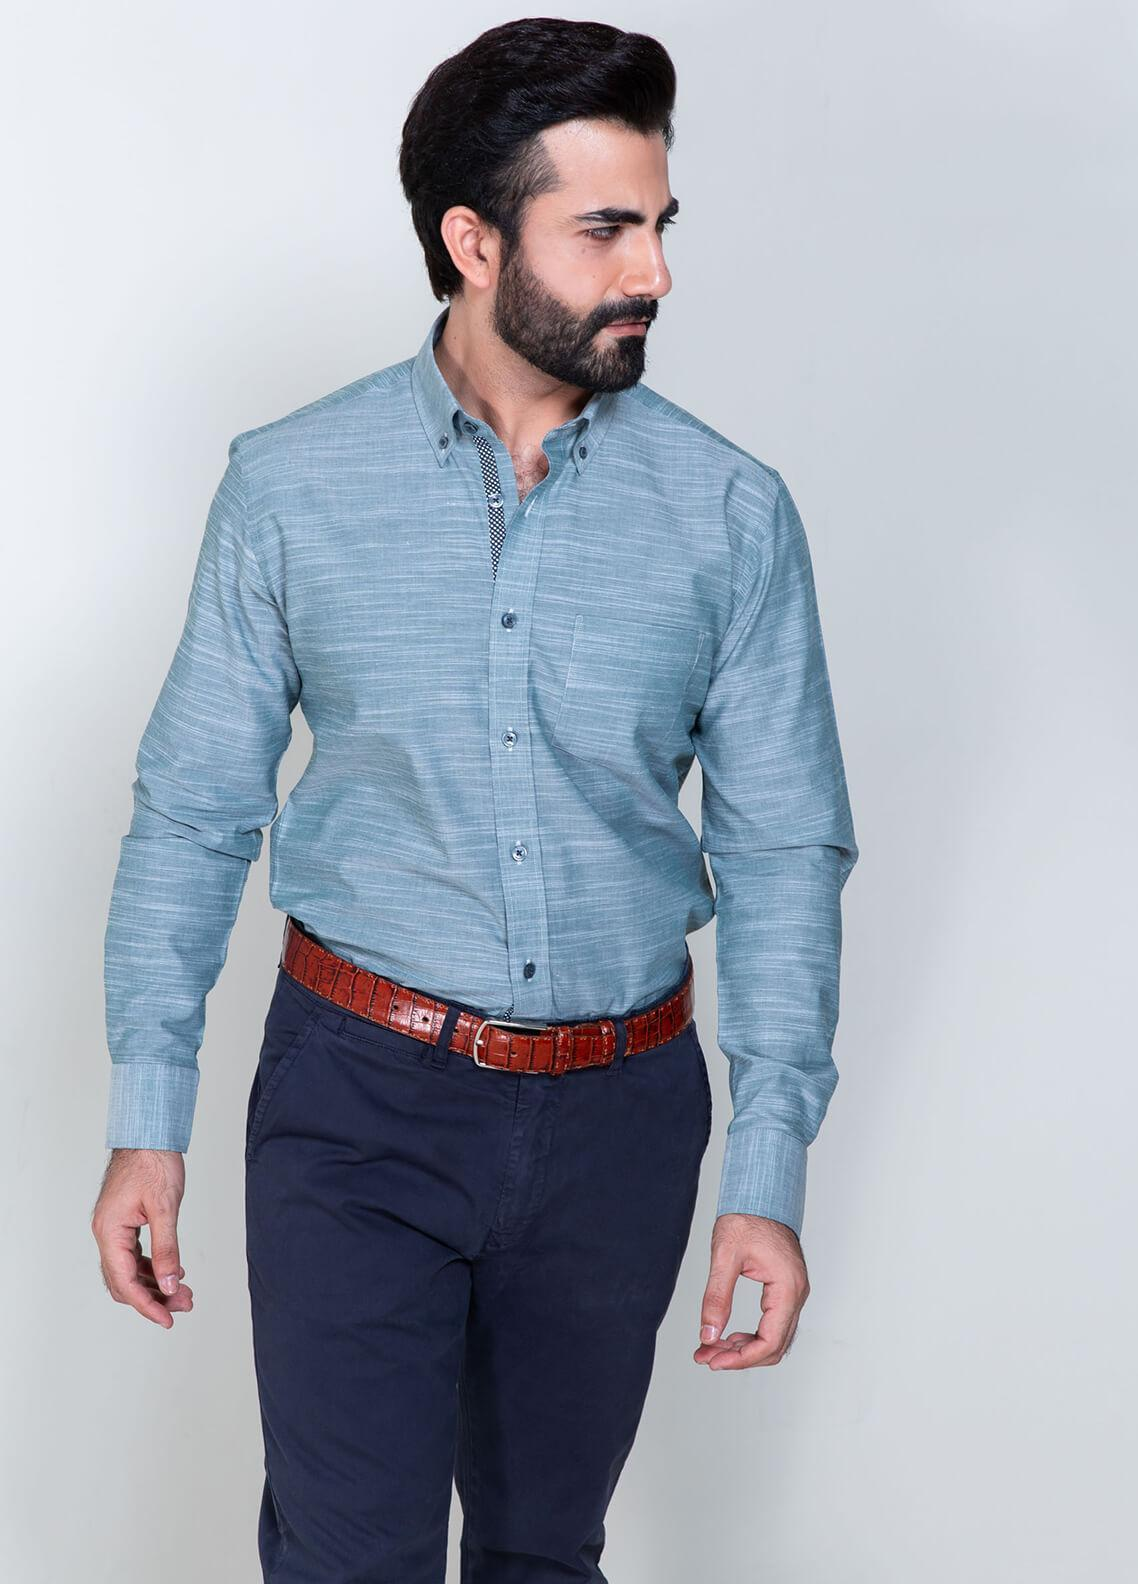 Brumano Cotton Formal Shirts for Men - Blue BRM-588